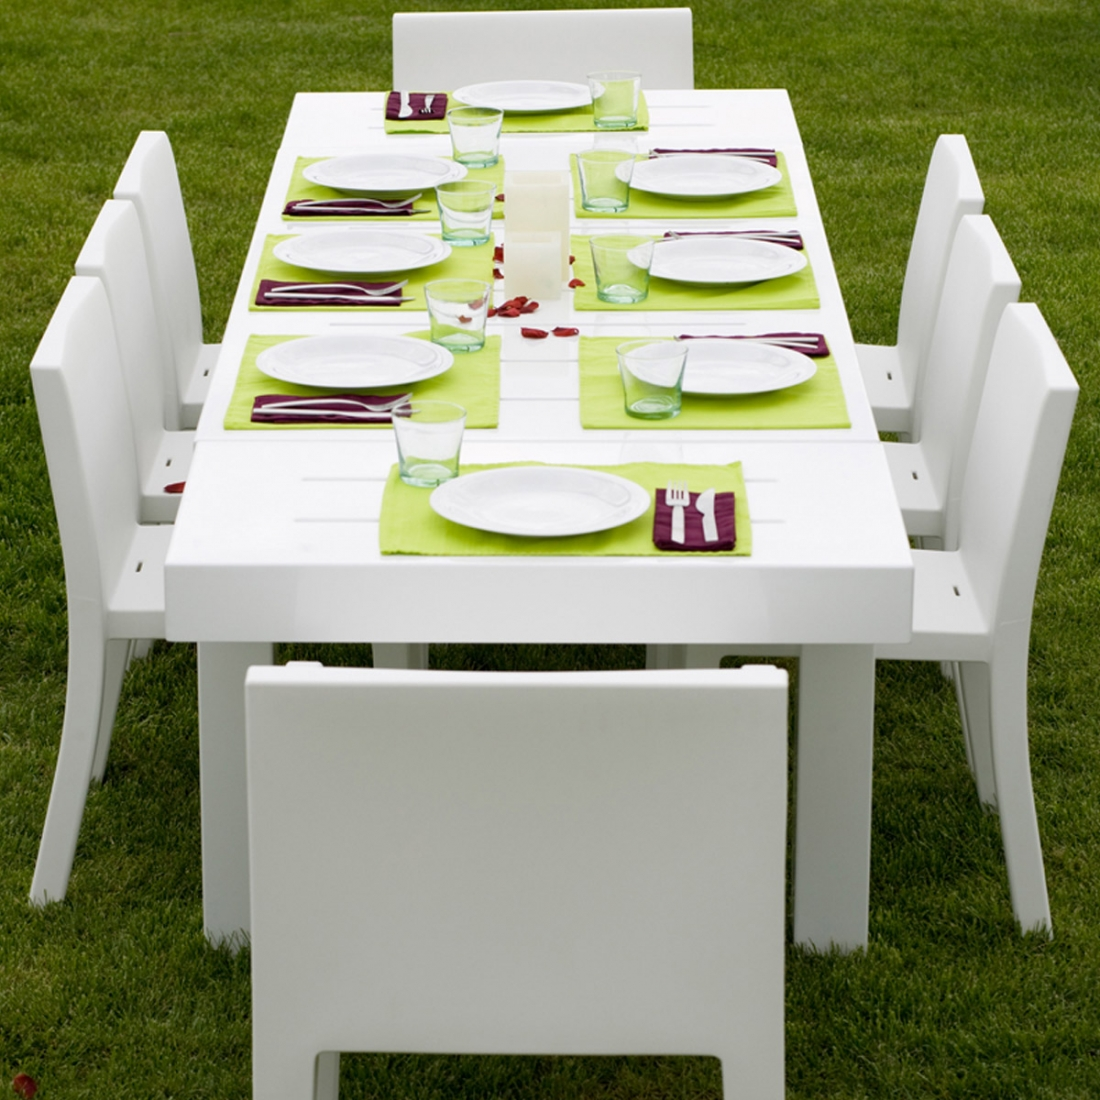 Table de jardin design 12 personnes jut par vondom for Table exterieur 12 personnes